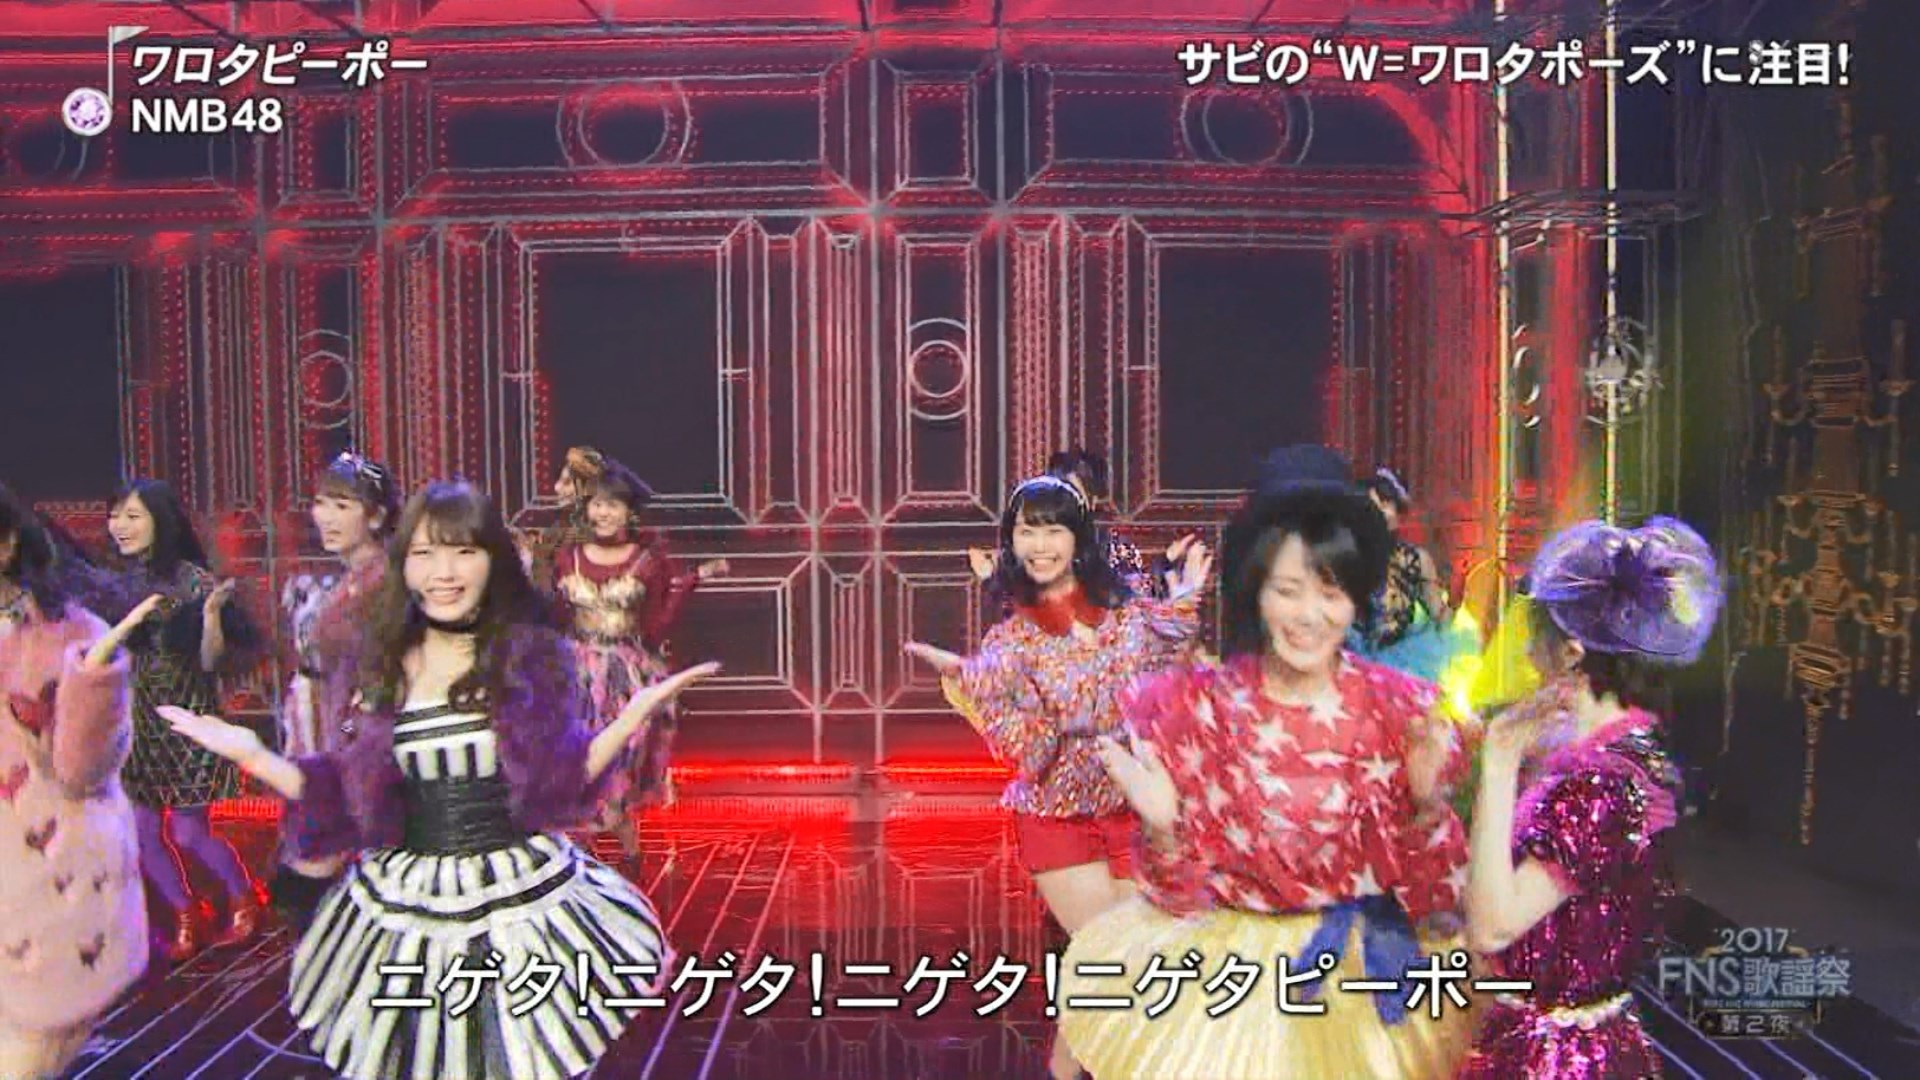 2017FNS歌謡祭第2夜・NMB48ワロタピーポーキャプ-078